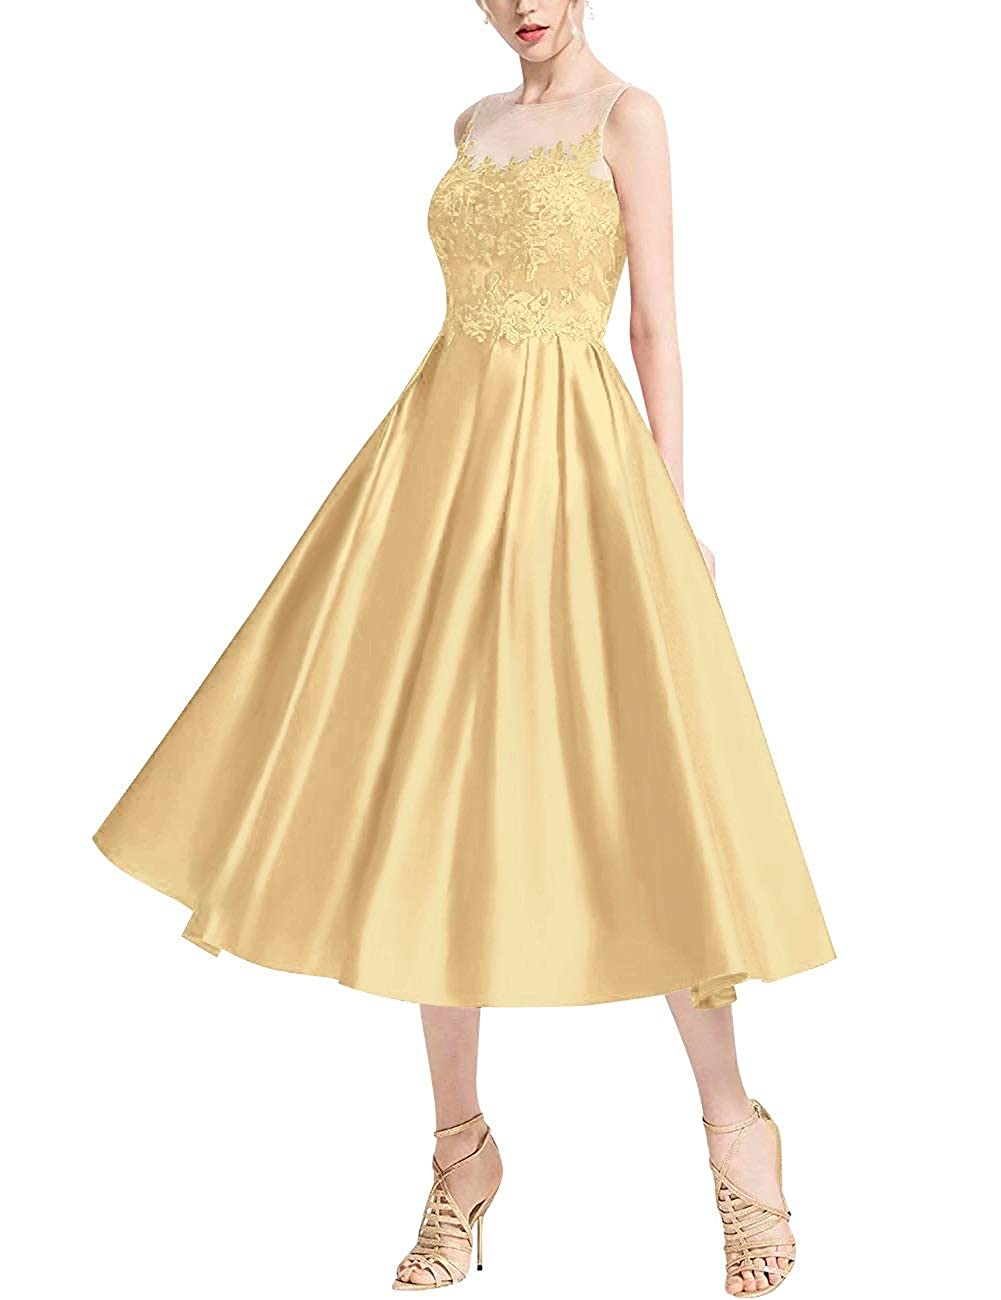 gold MorySong Women's Lace Illusion Bateau Neck Tea Length Cocktail Homecoming Dress